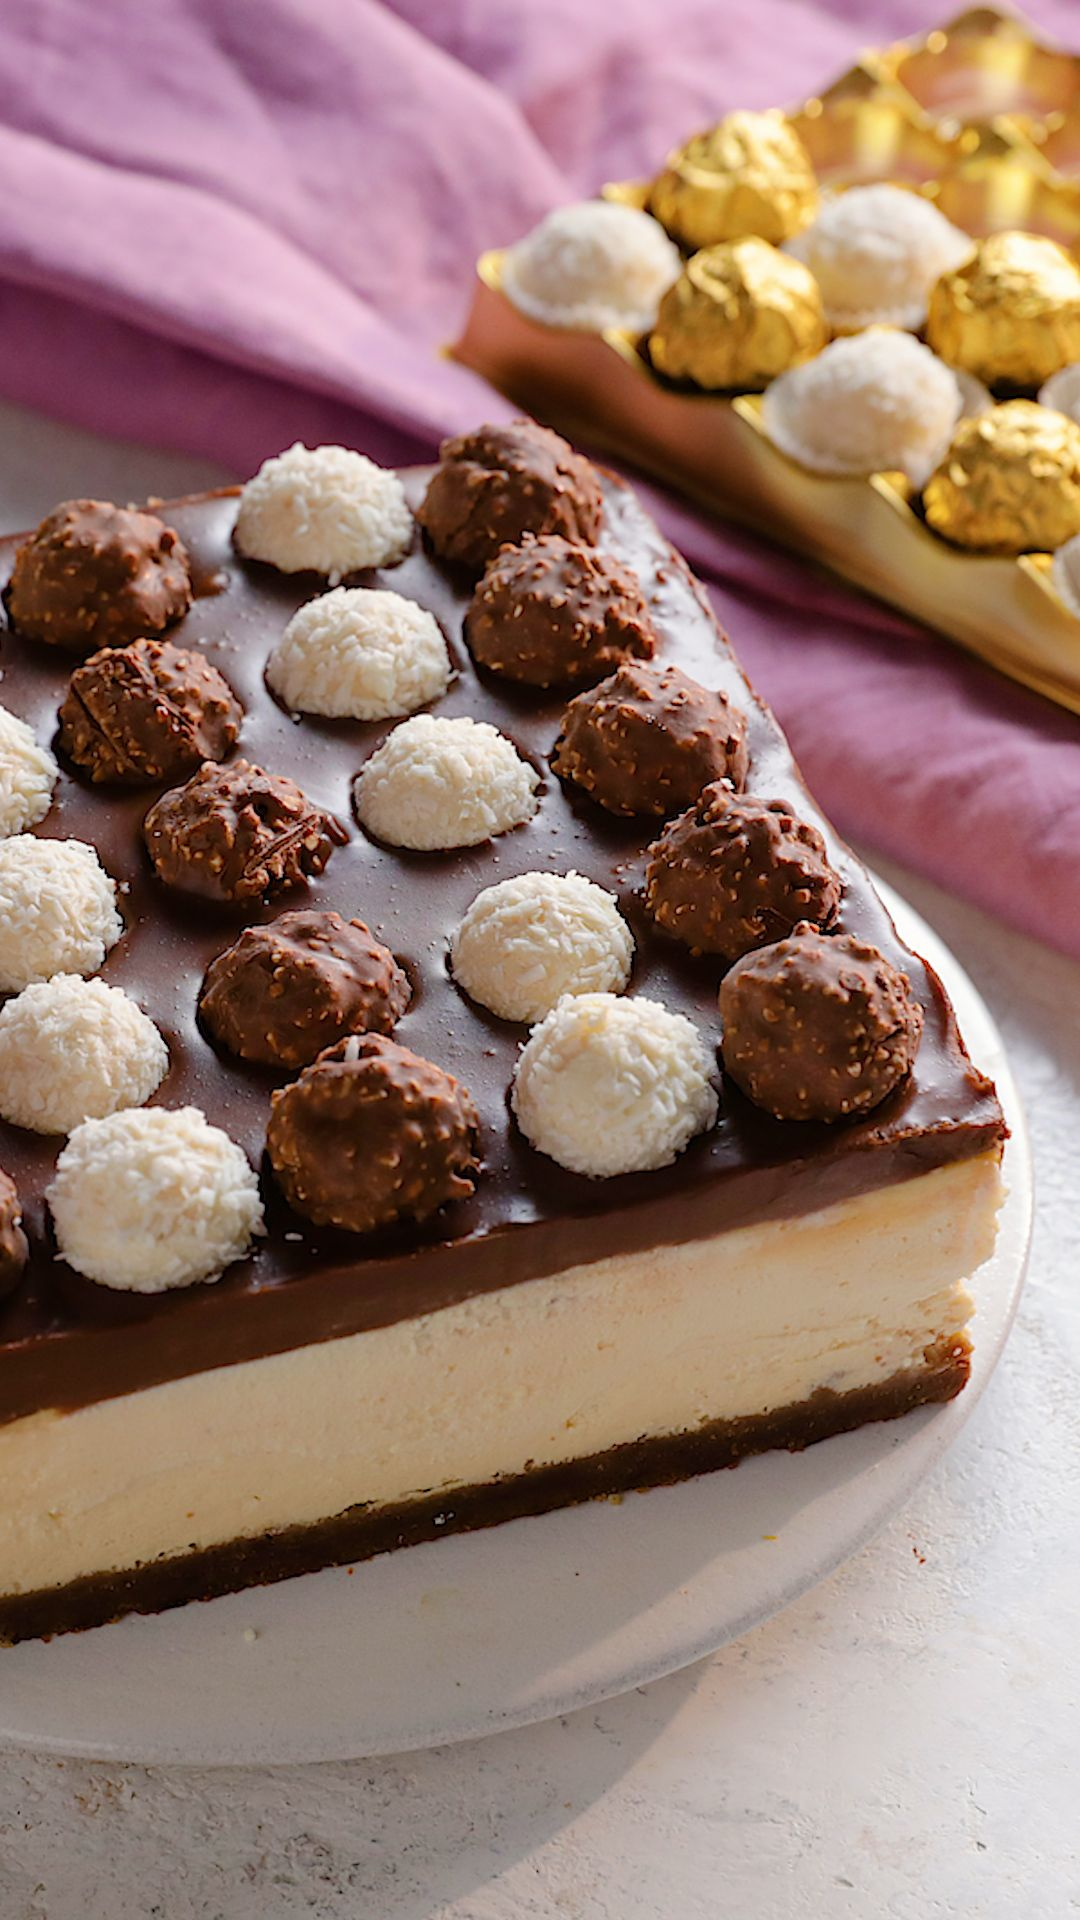 Cheesecake Ferrero Rocher